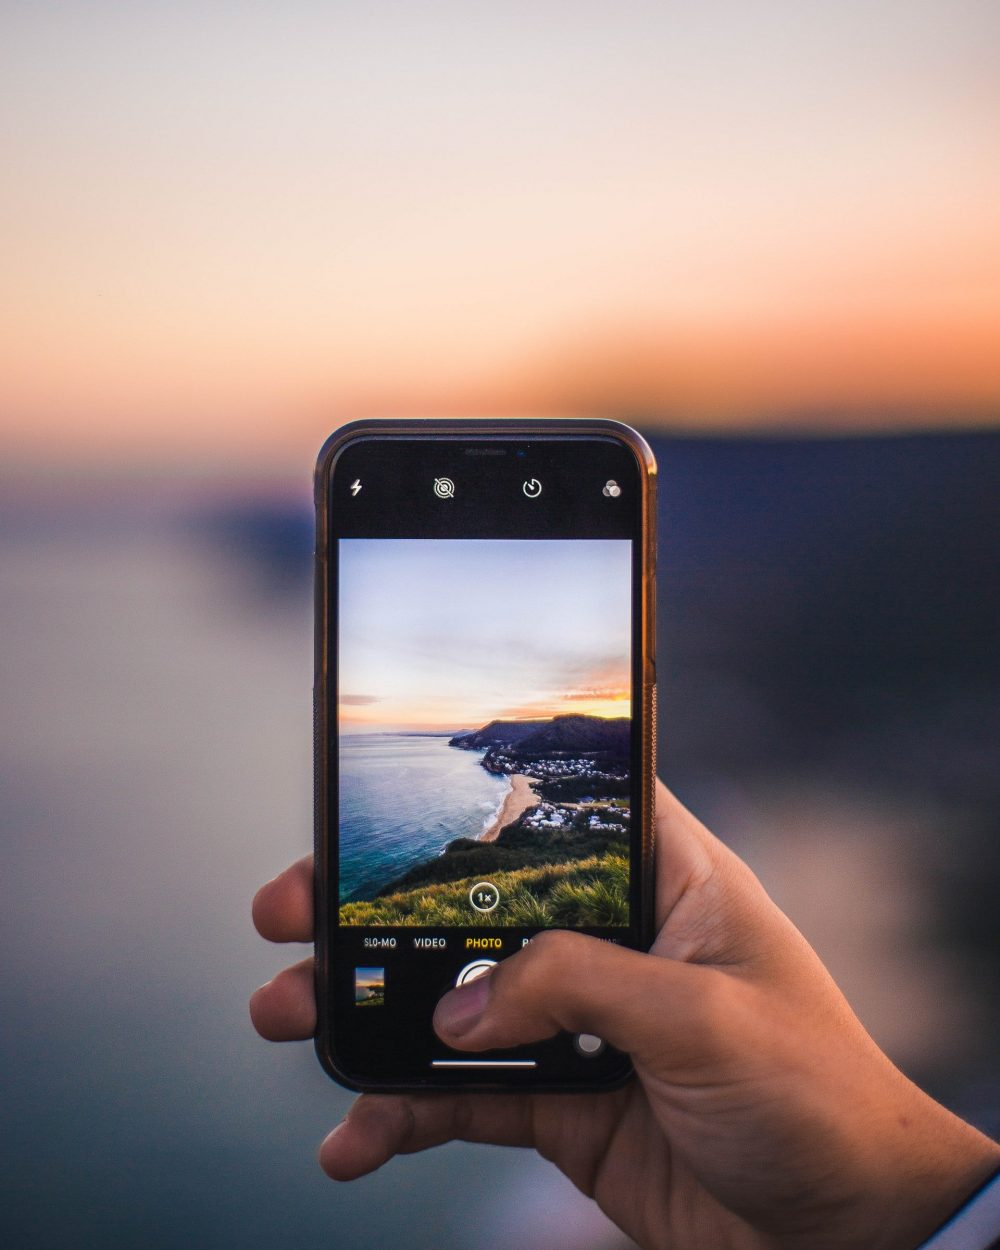 How to Get The Best Shots With a Mobile Phone